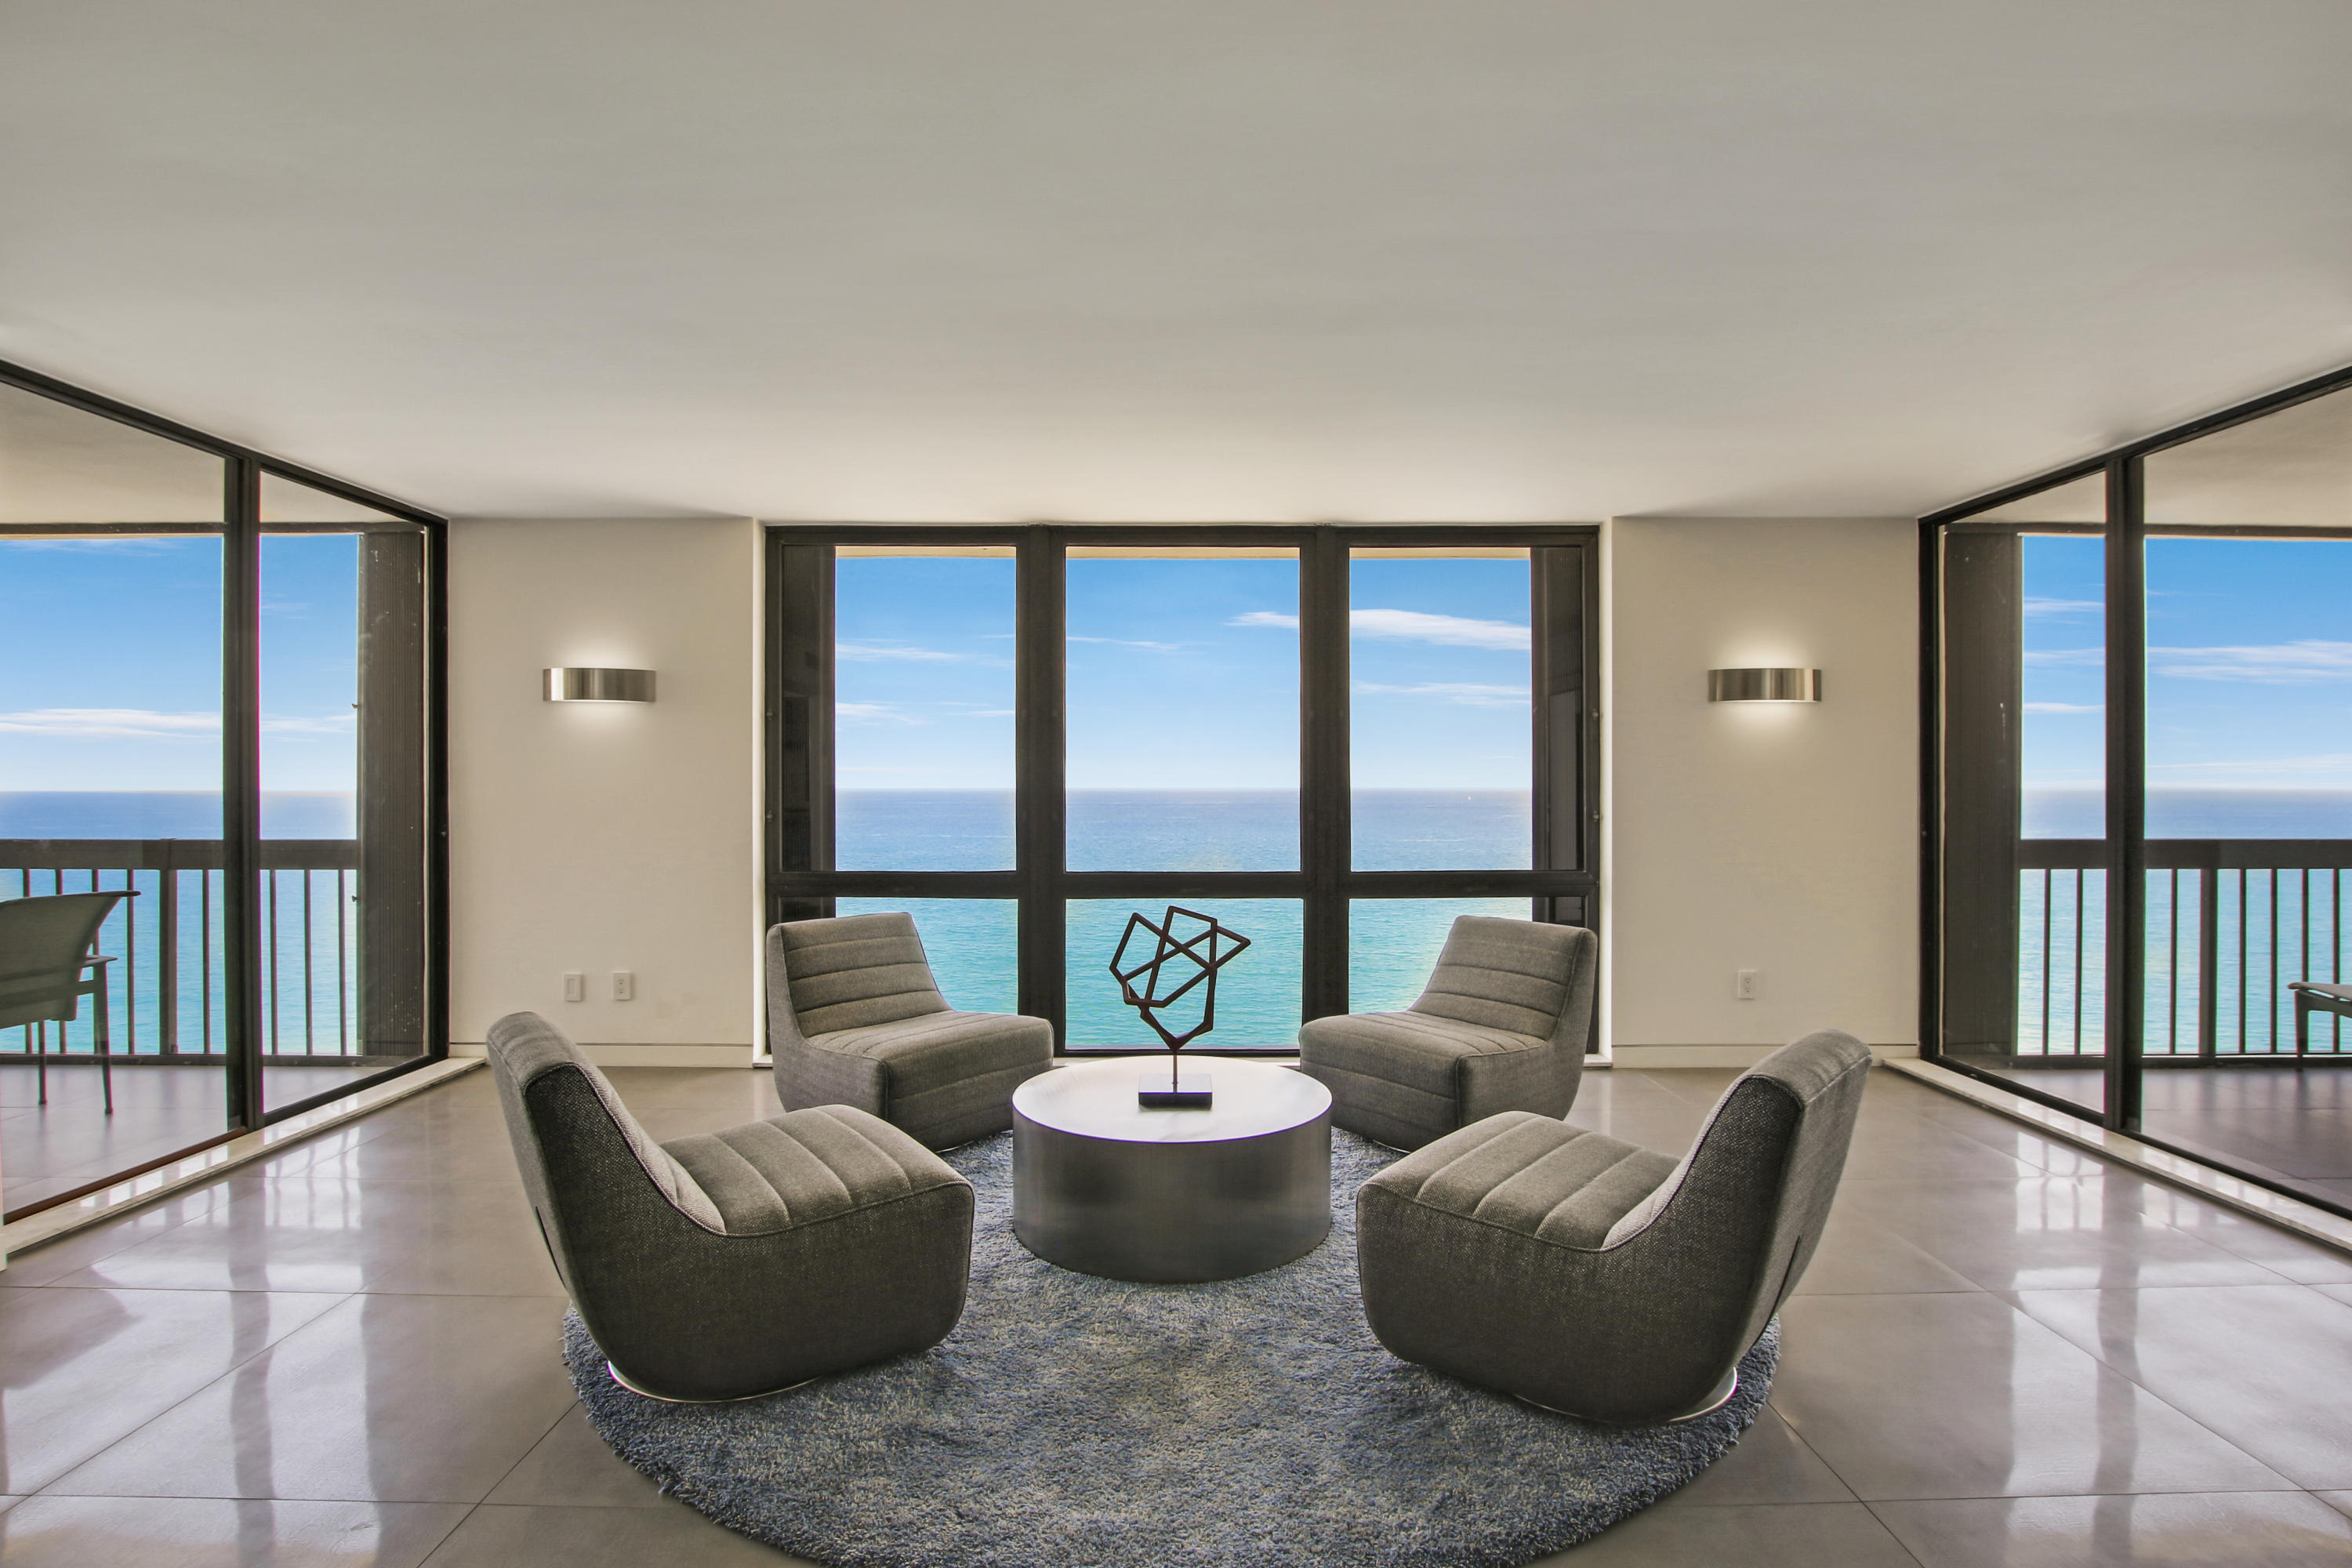 New Home for sale at 5380 Ocean Drive in Singer Island